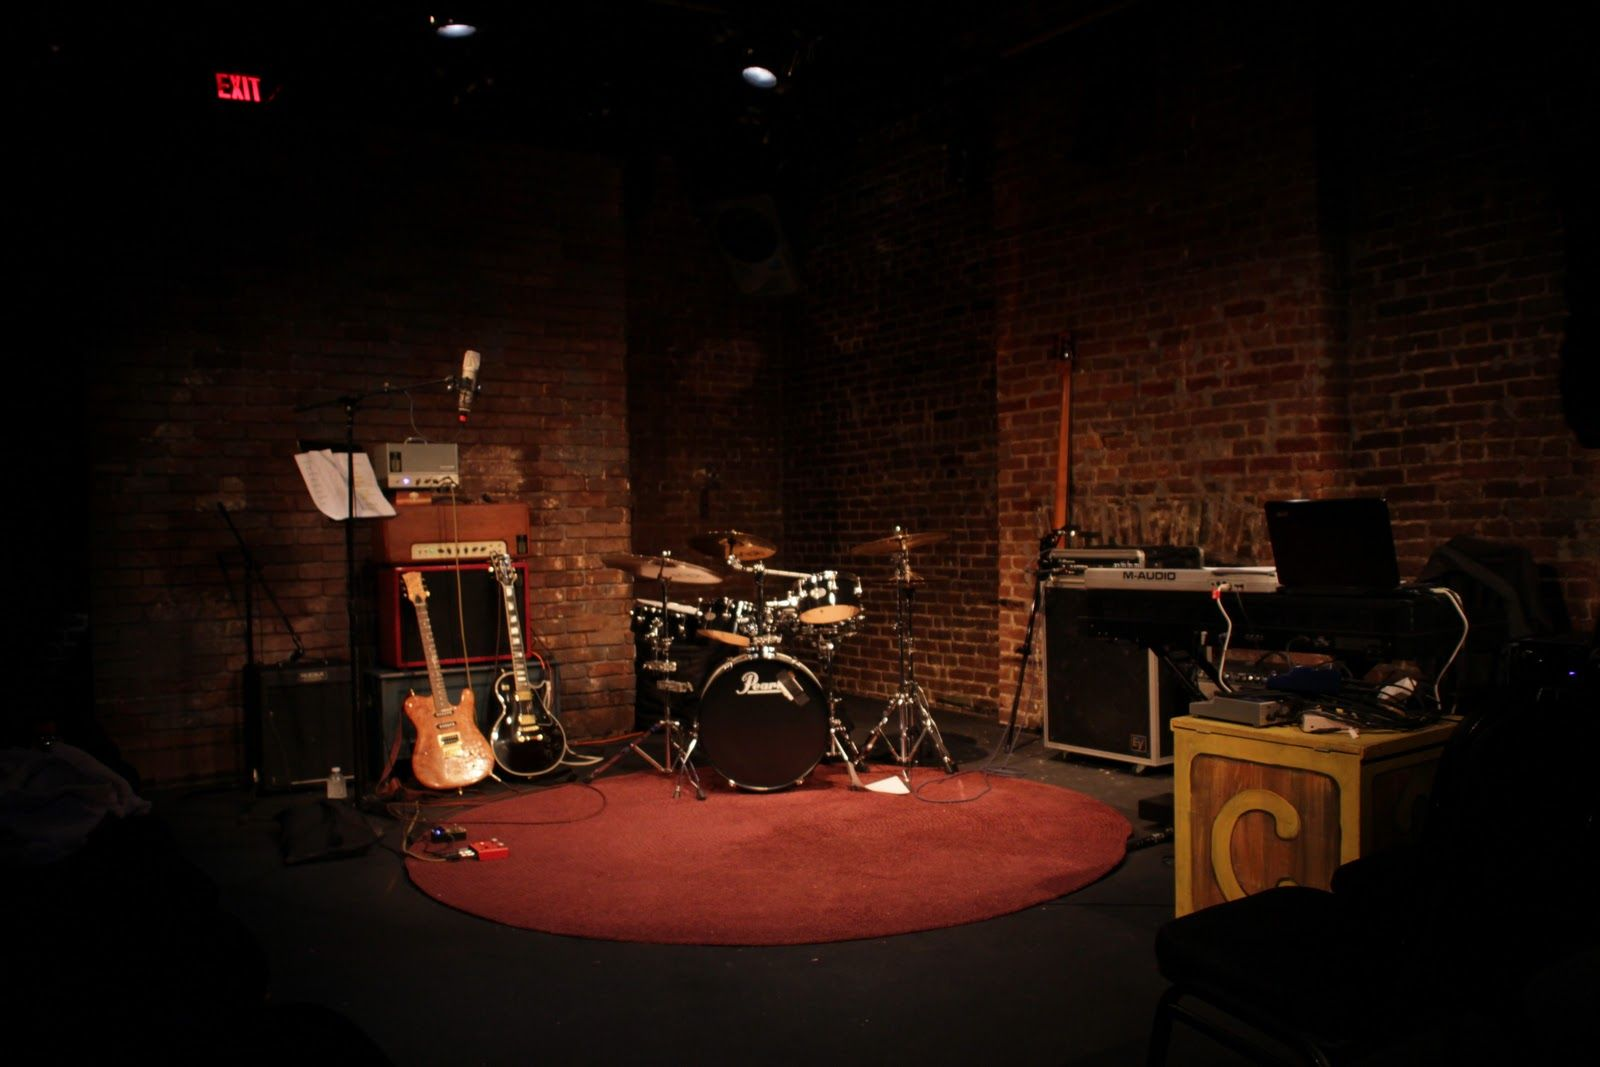 empty band stage - Google Search (With images) | Concert ...